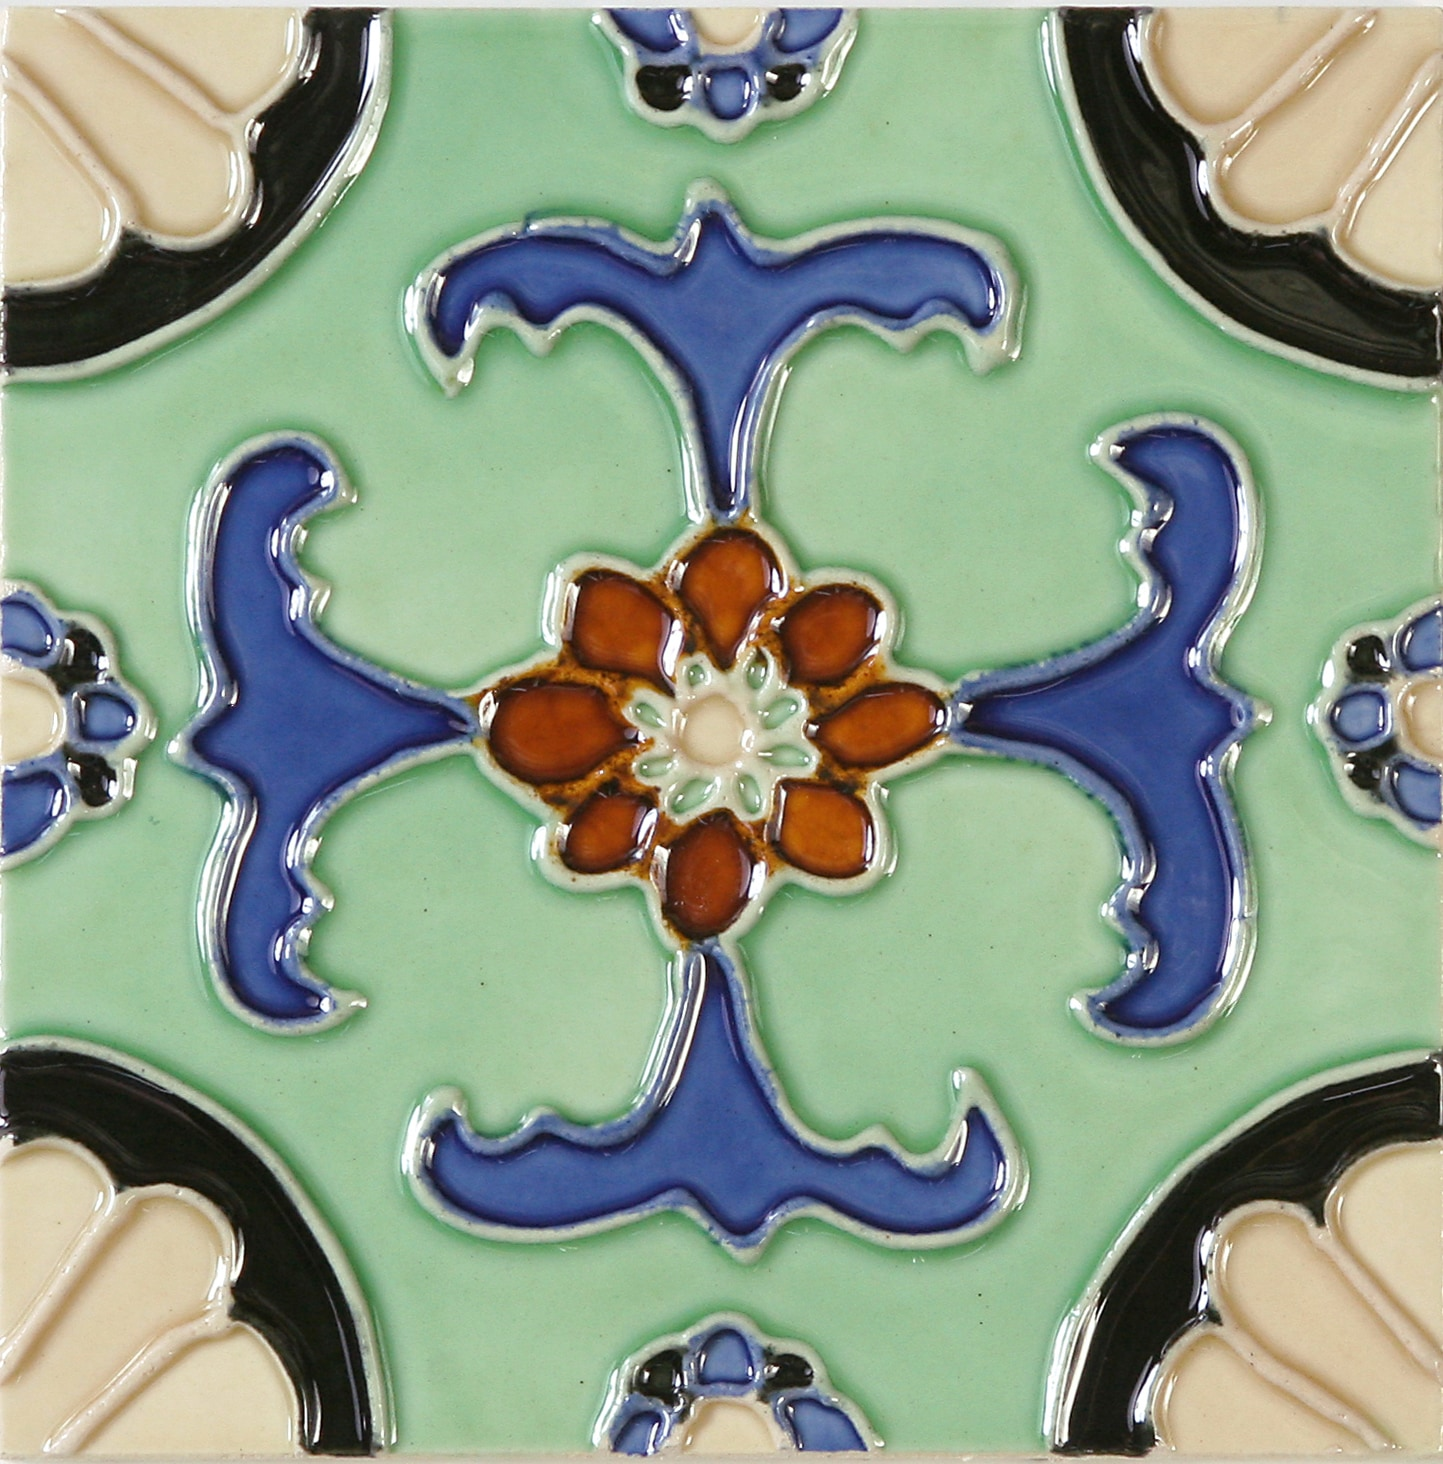 Hand-Painted Ceramic Glazed Wall Tile in Fuente Hand-Painted Ceramic Glazed Wall Tile in Fuente 0